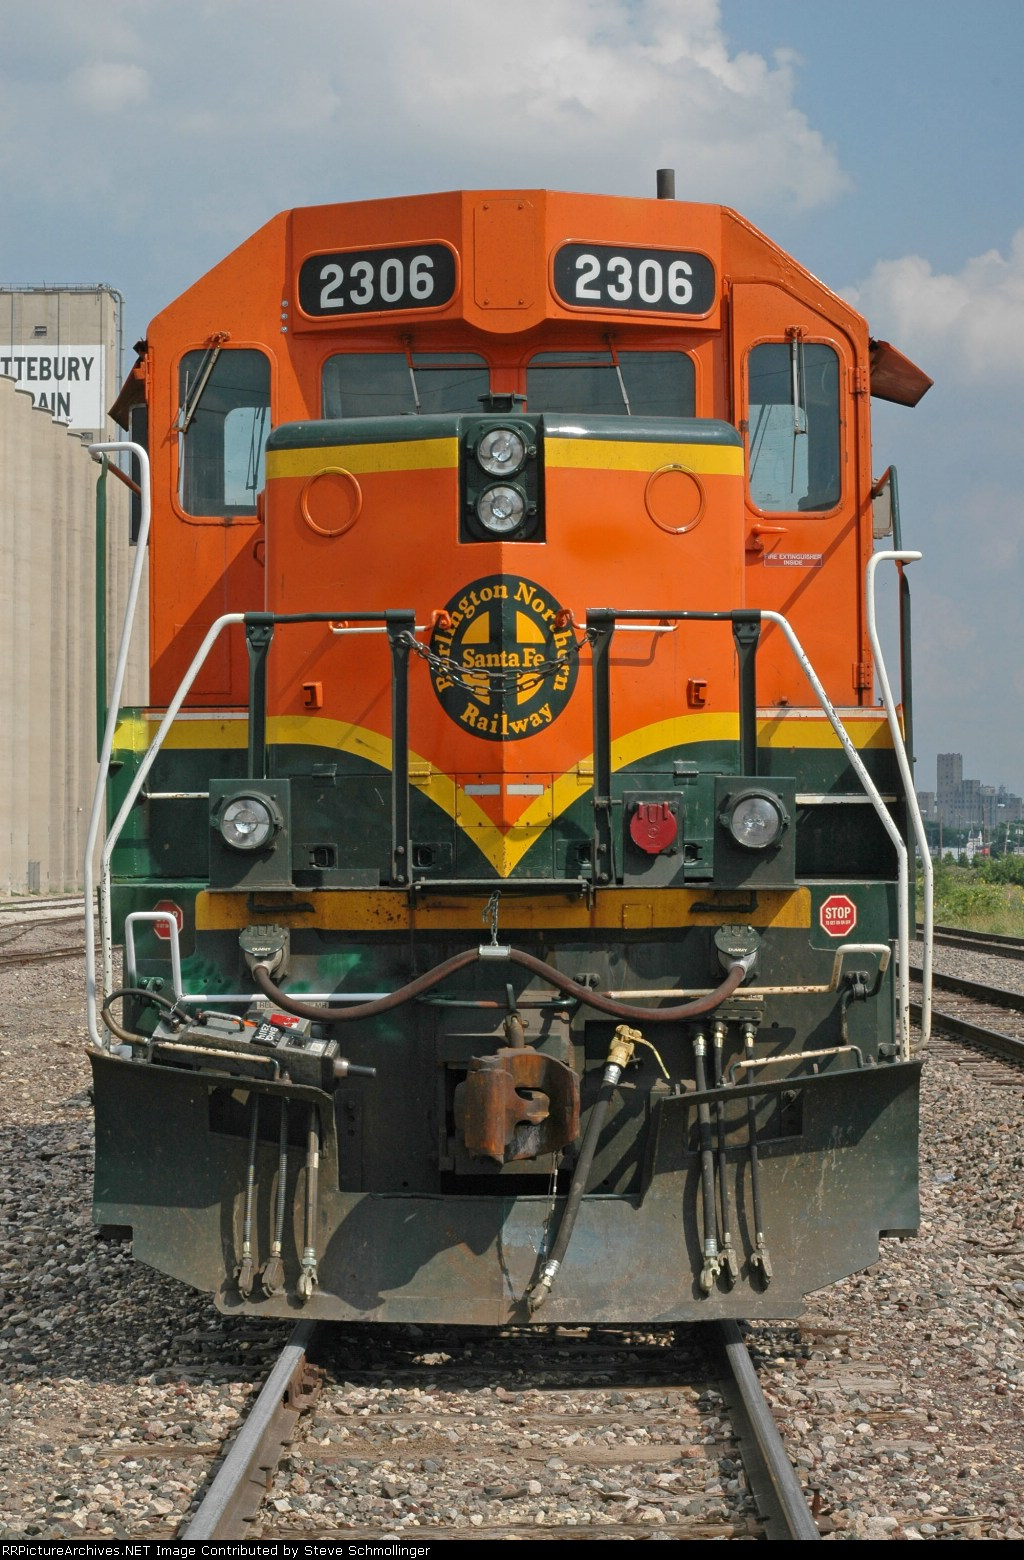 Nose of BNSF 2306